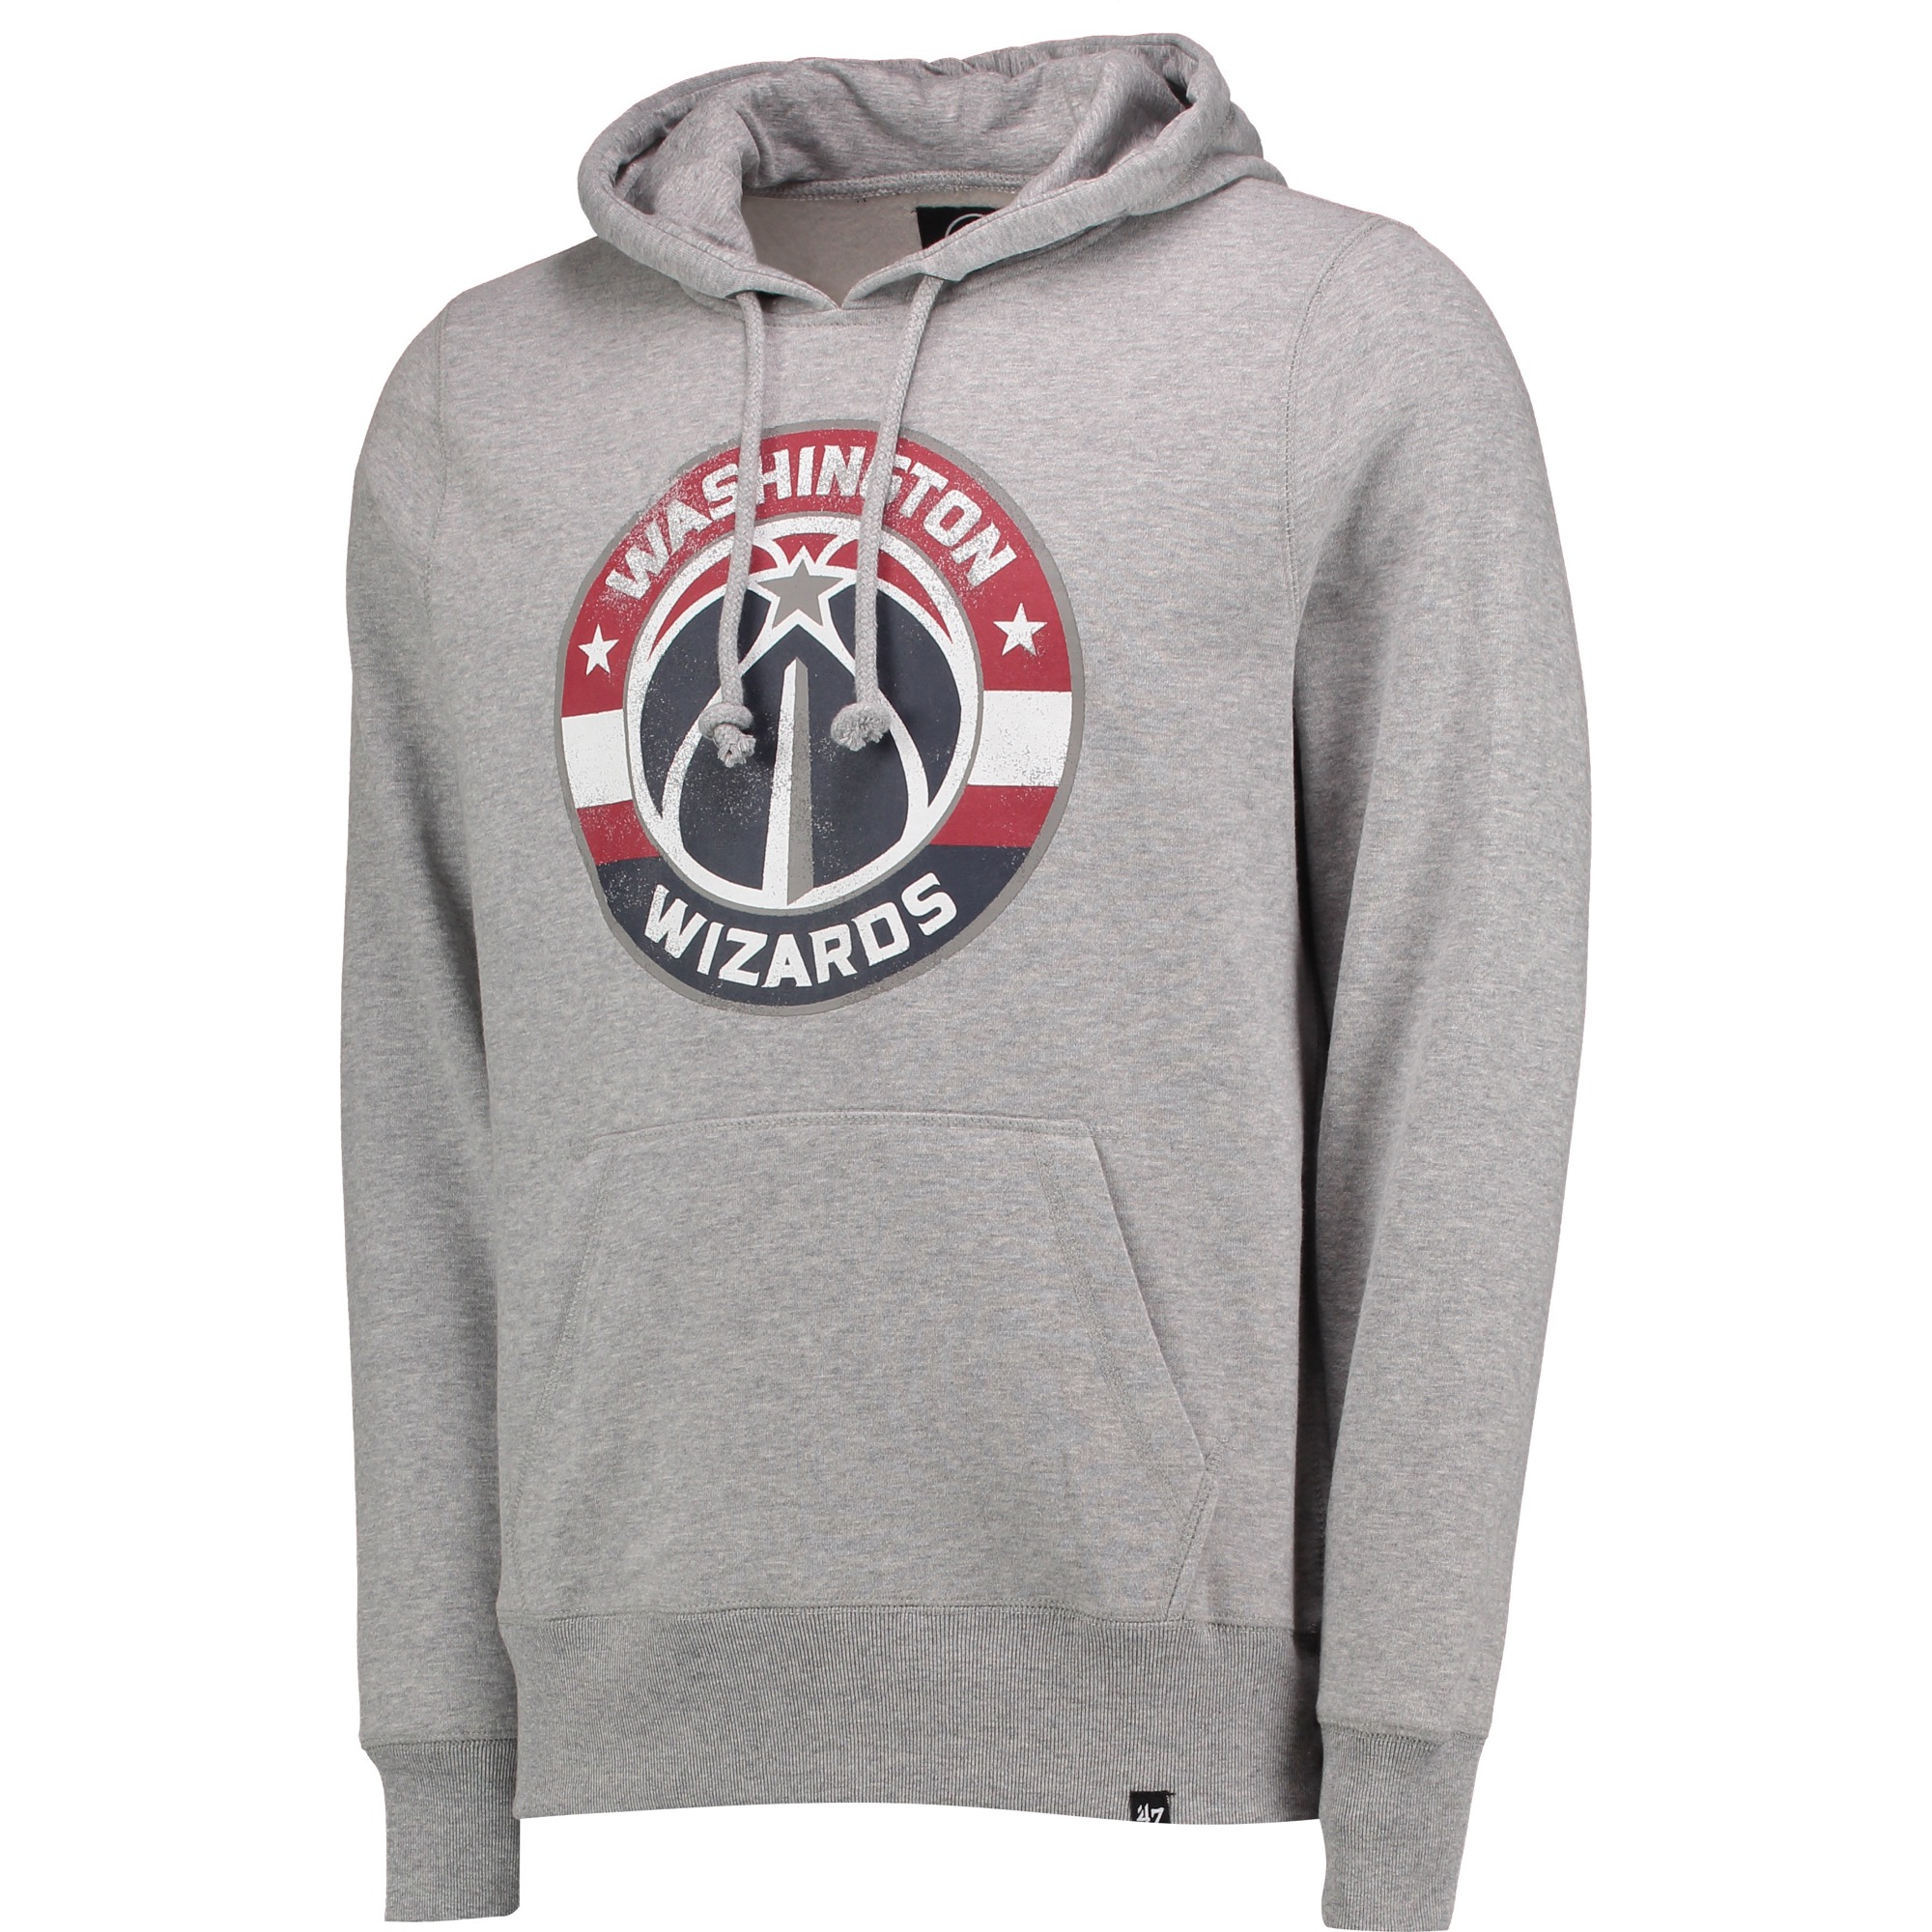 Washington Wizards 47 Core Knockaround Hoodie - Mens